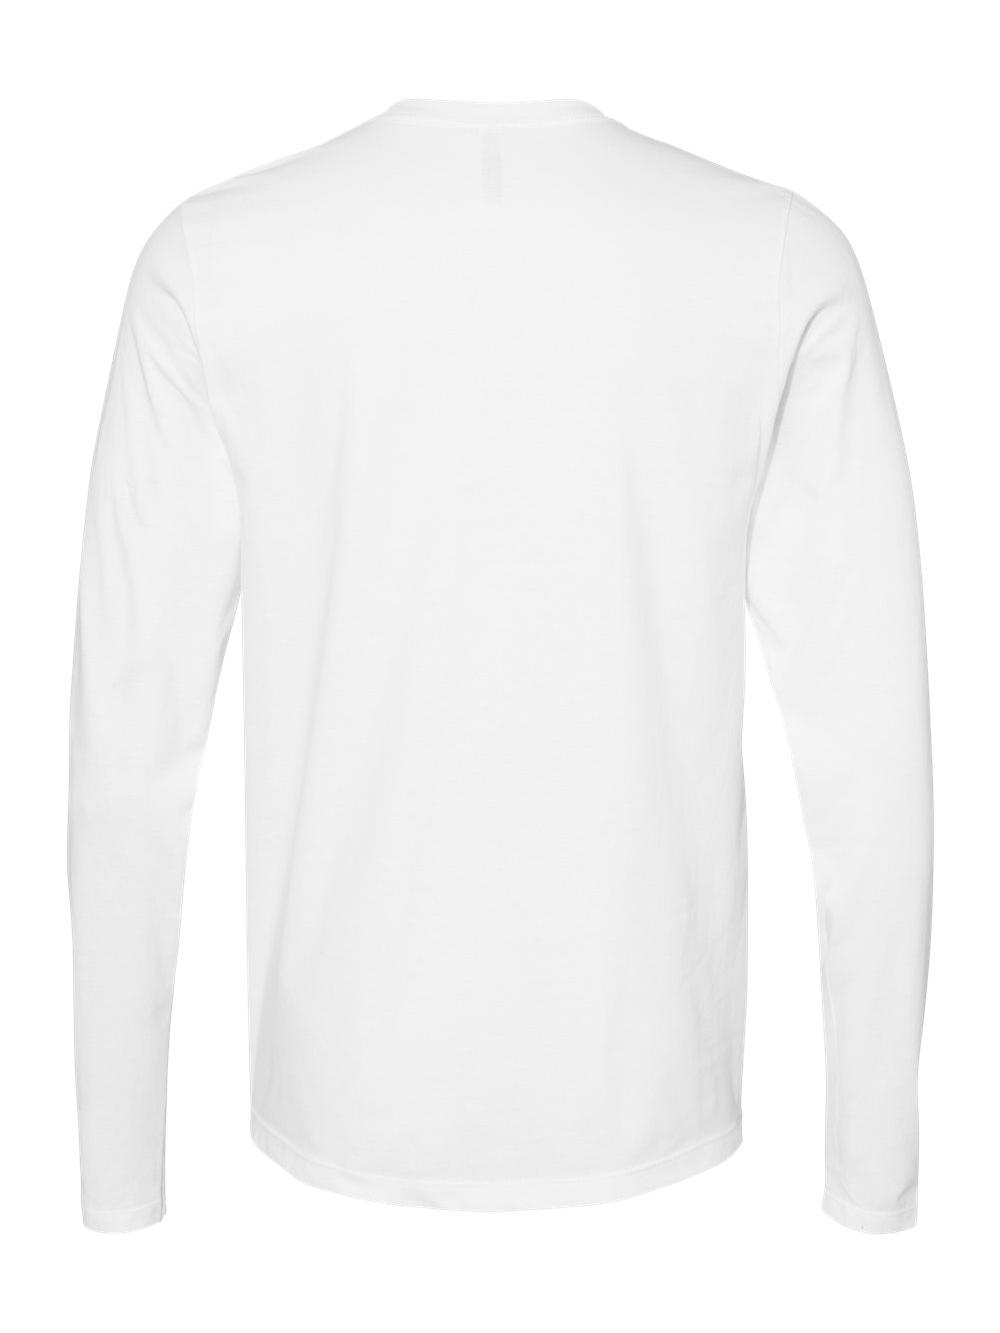 ALSTYLE-Ultimate-Long-Sleeve-T-Shirt-5304 thumbnail 20